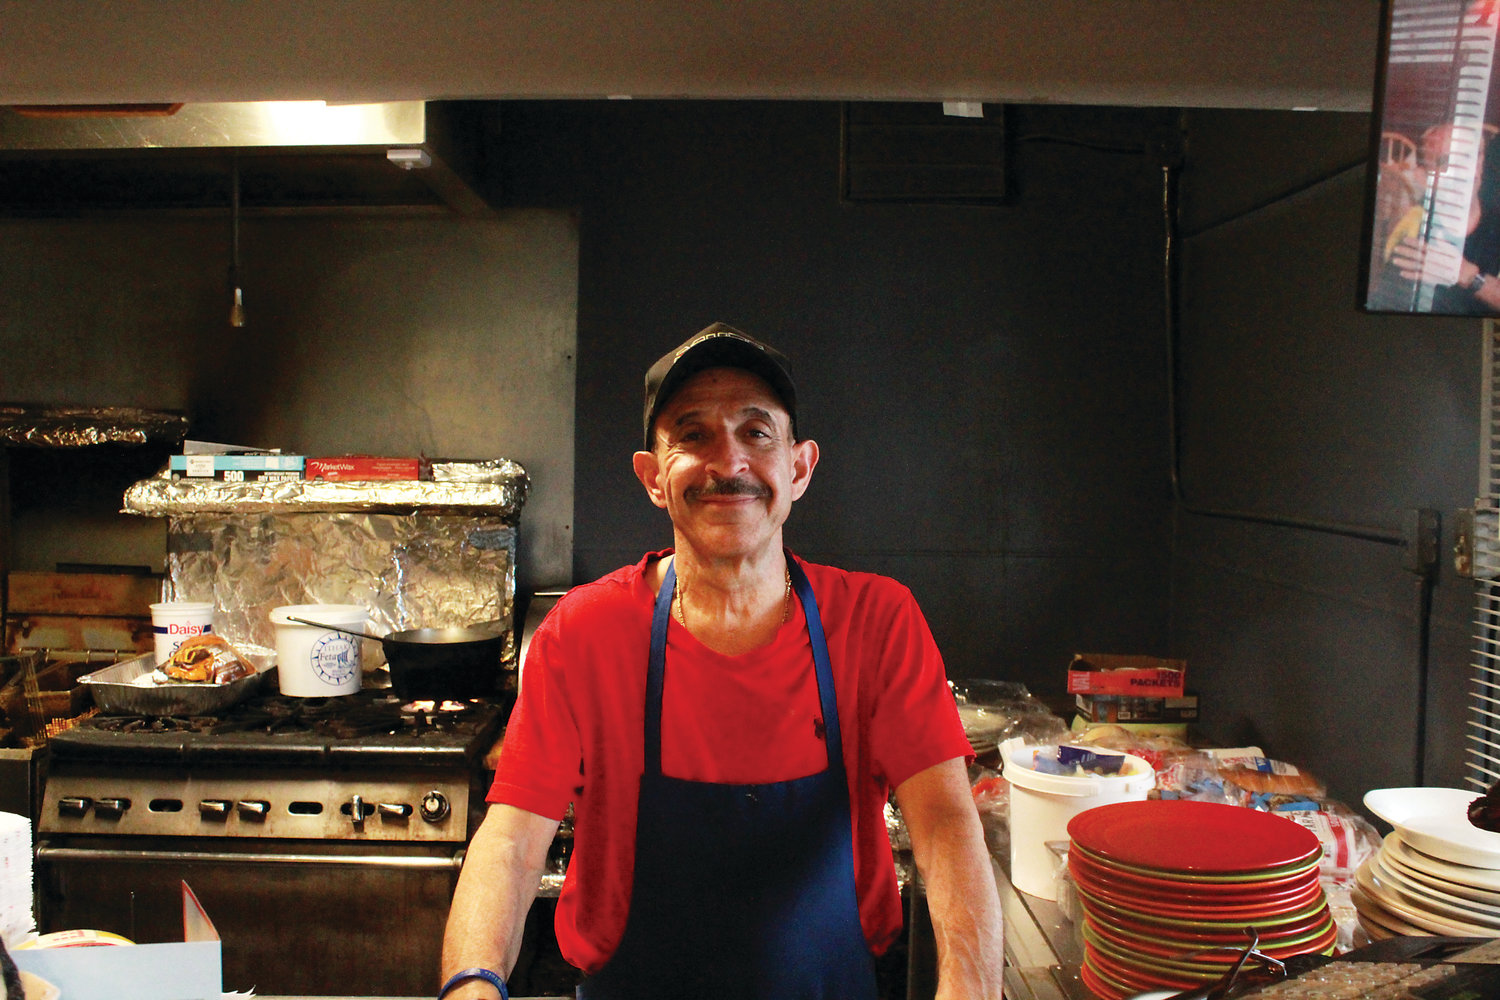 Nick Andurlakis poses behind the counter of Nick's Cafe. The restaurant is known for its Fool's Gold sandwich.